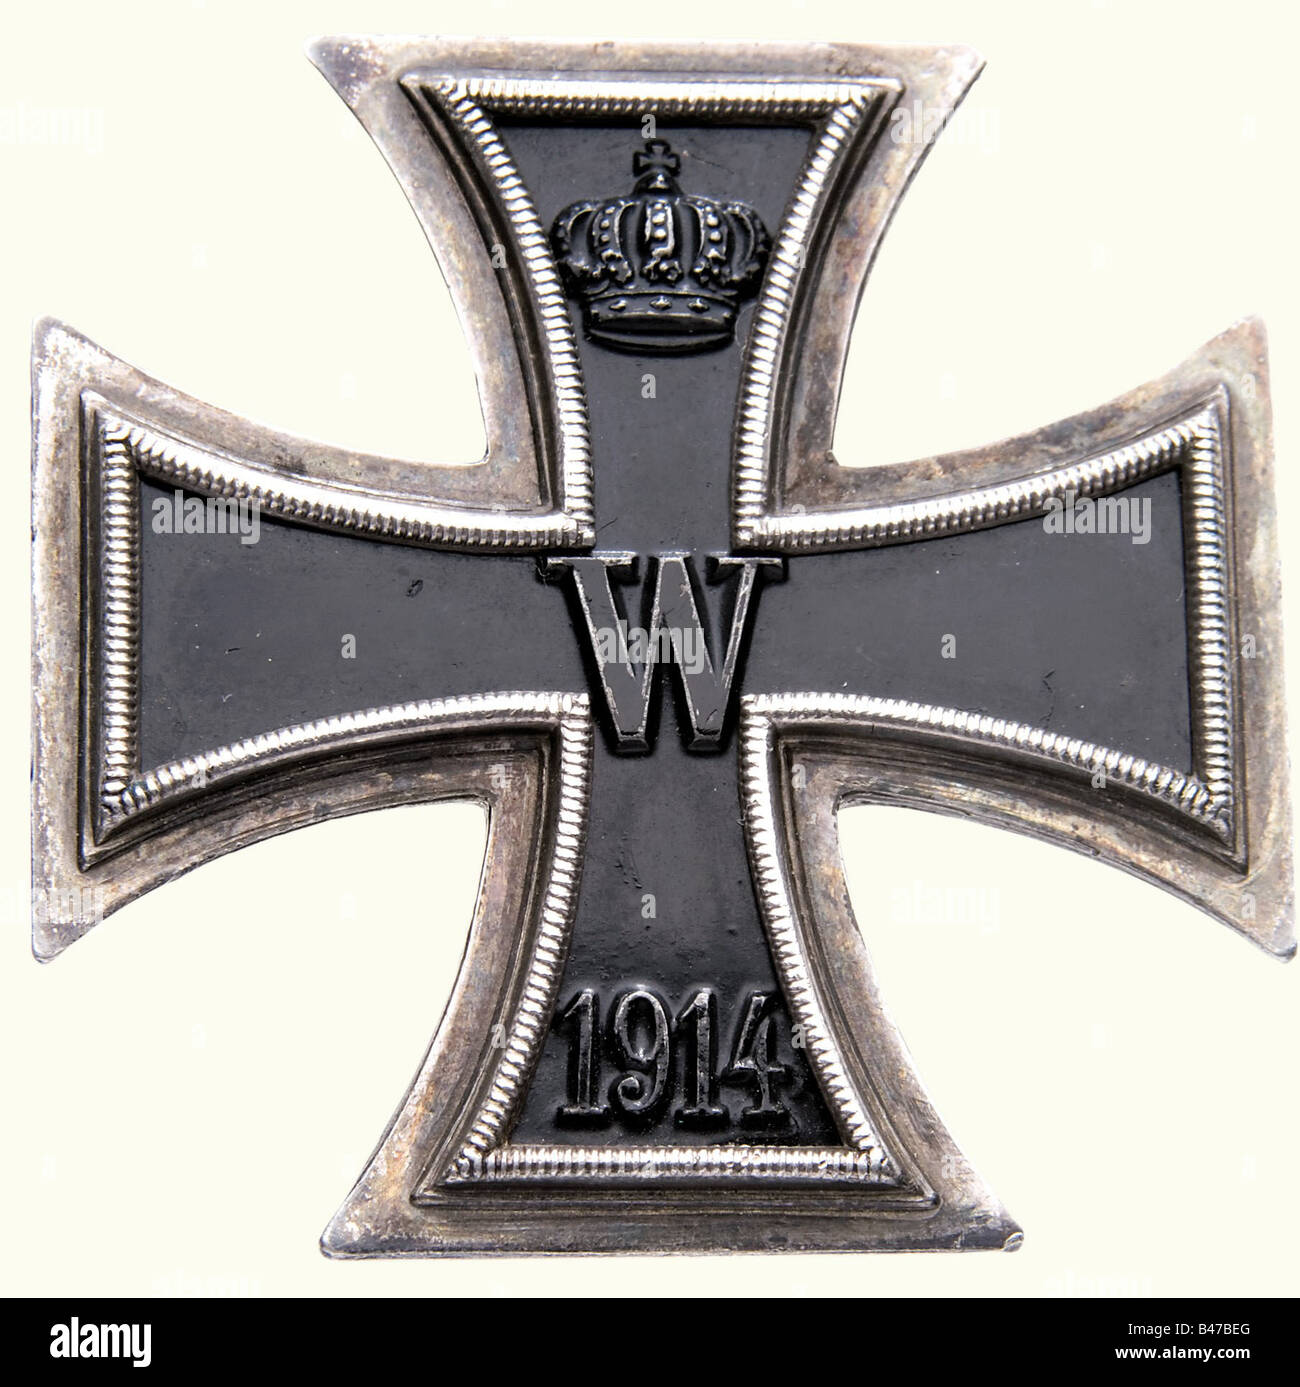 Fritz Wiedemann In The Bavarian Army Certificates Awards And Stock